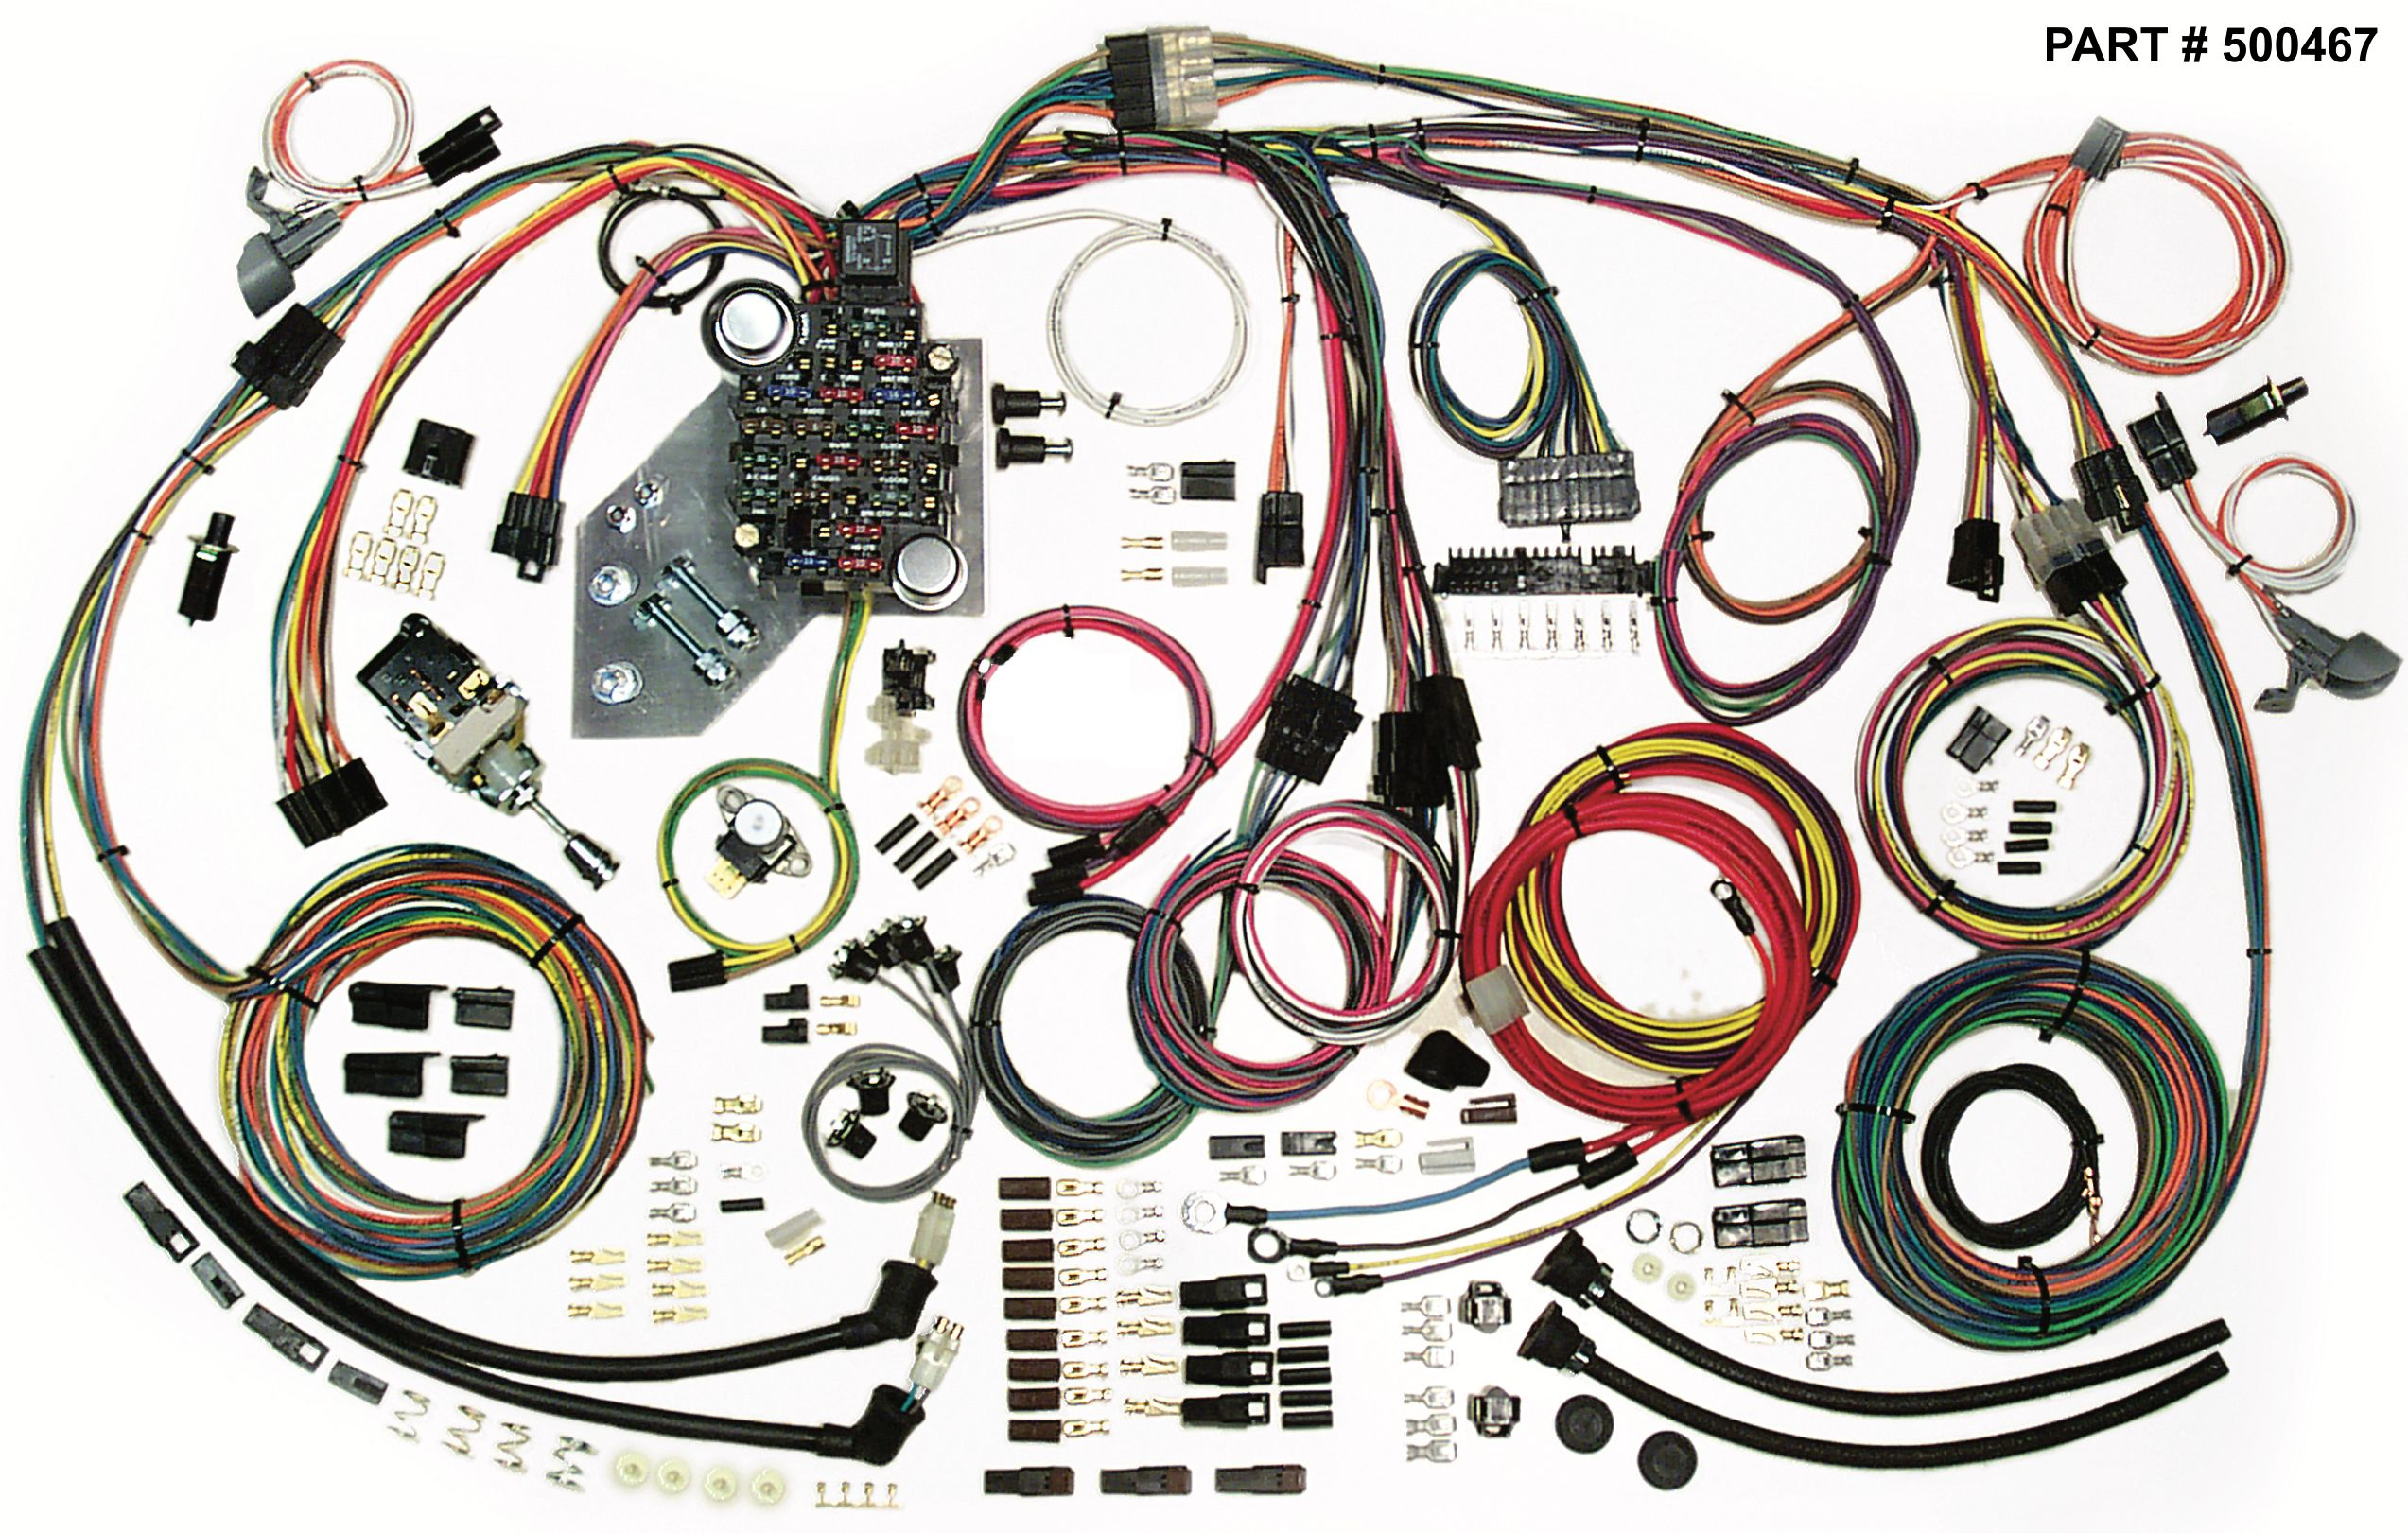 1947 (2nd Series) 1955 (1st Series) Chevrolet & Gmc Trucks 1954 Chevy  Wiring Harness Wiring Harness Kits For 1958 Chevy Truck